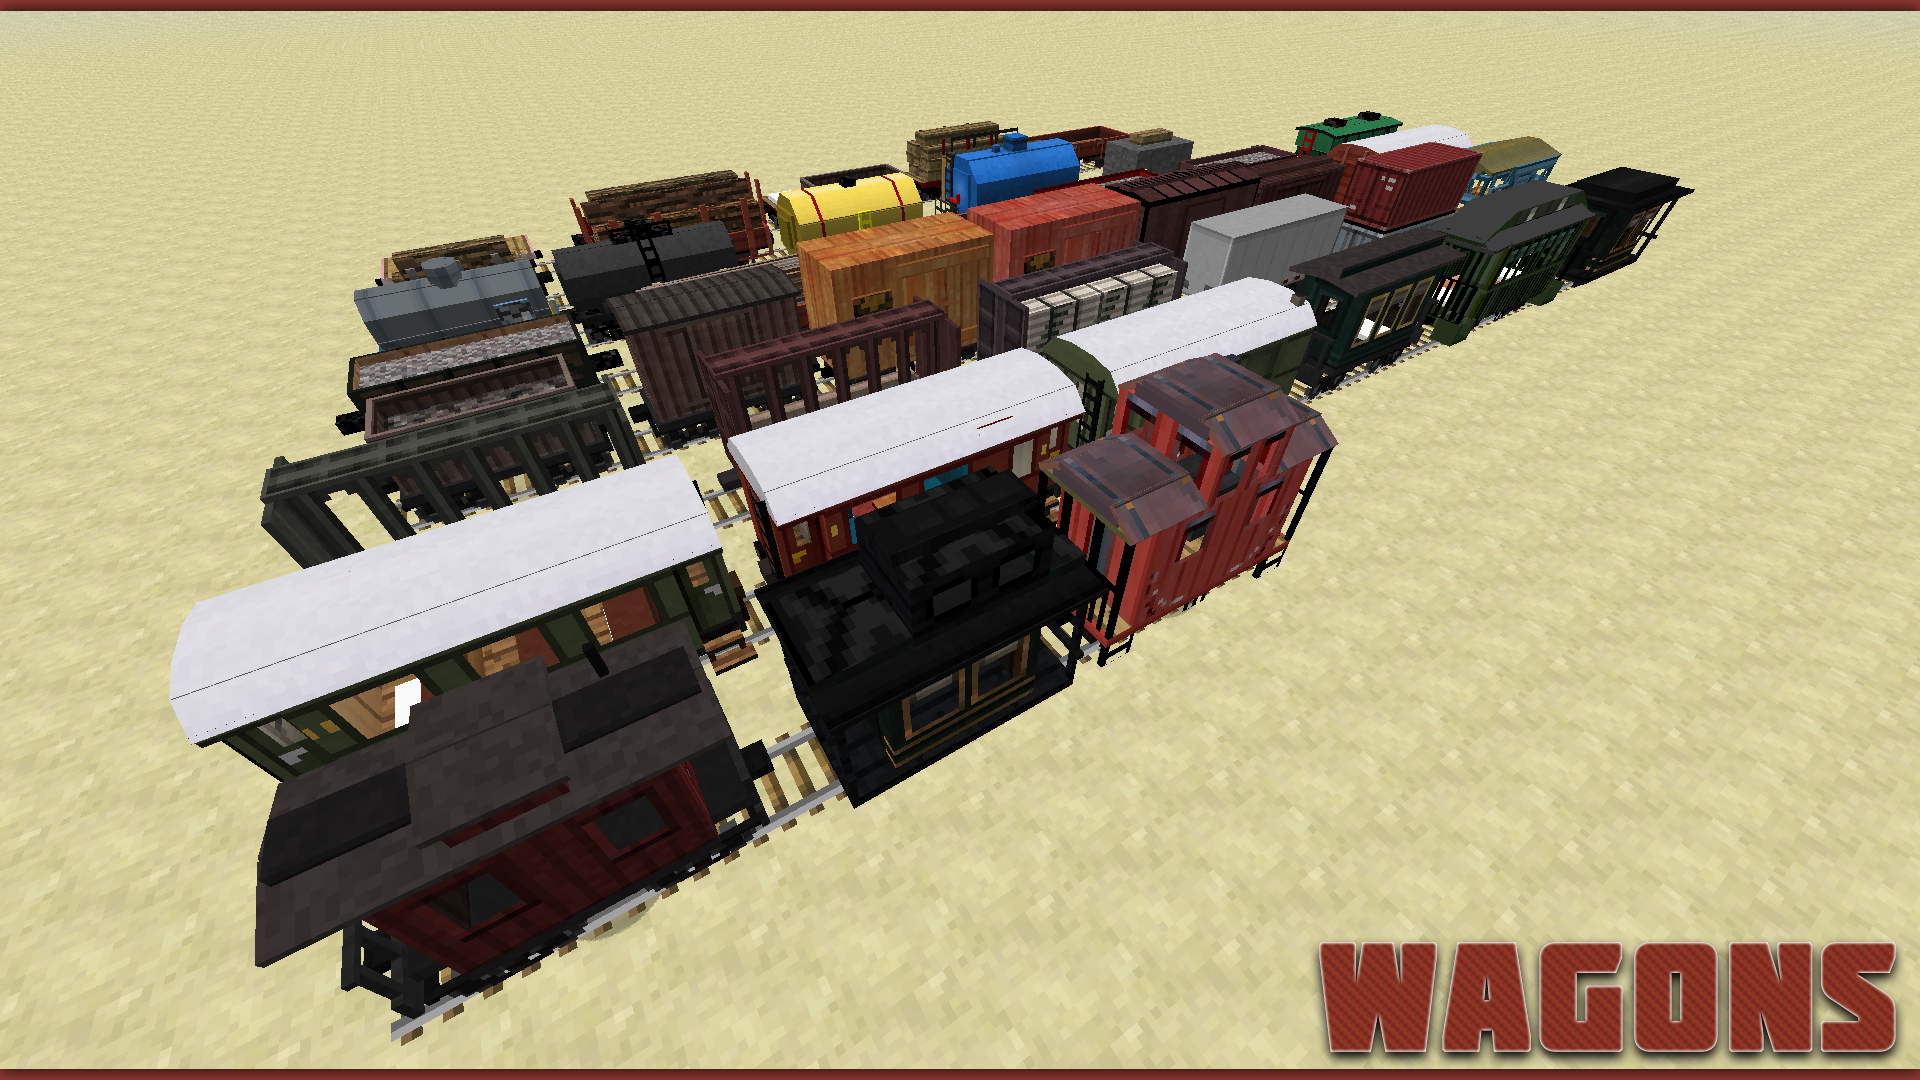 ddc03  Wagons1 Traincraft Screenshots